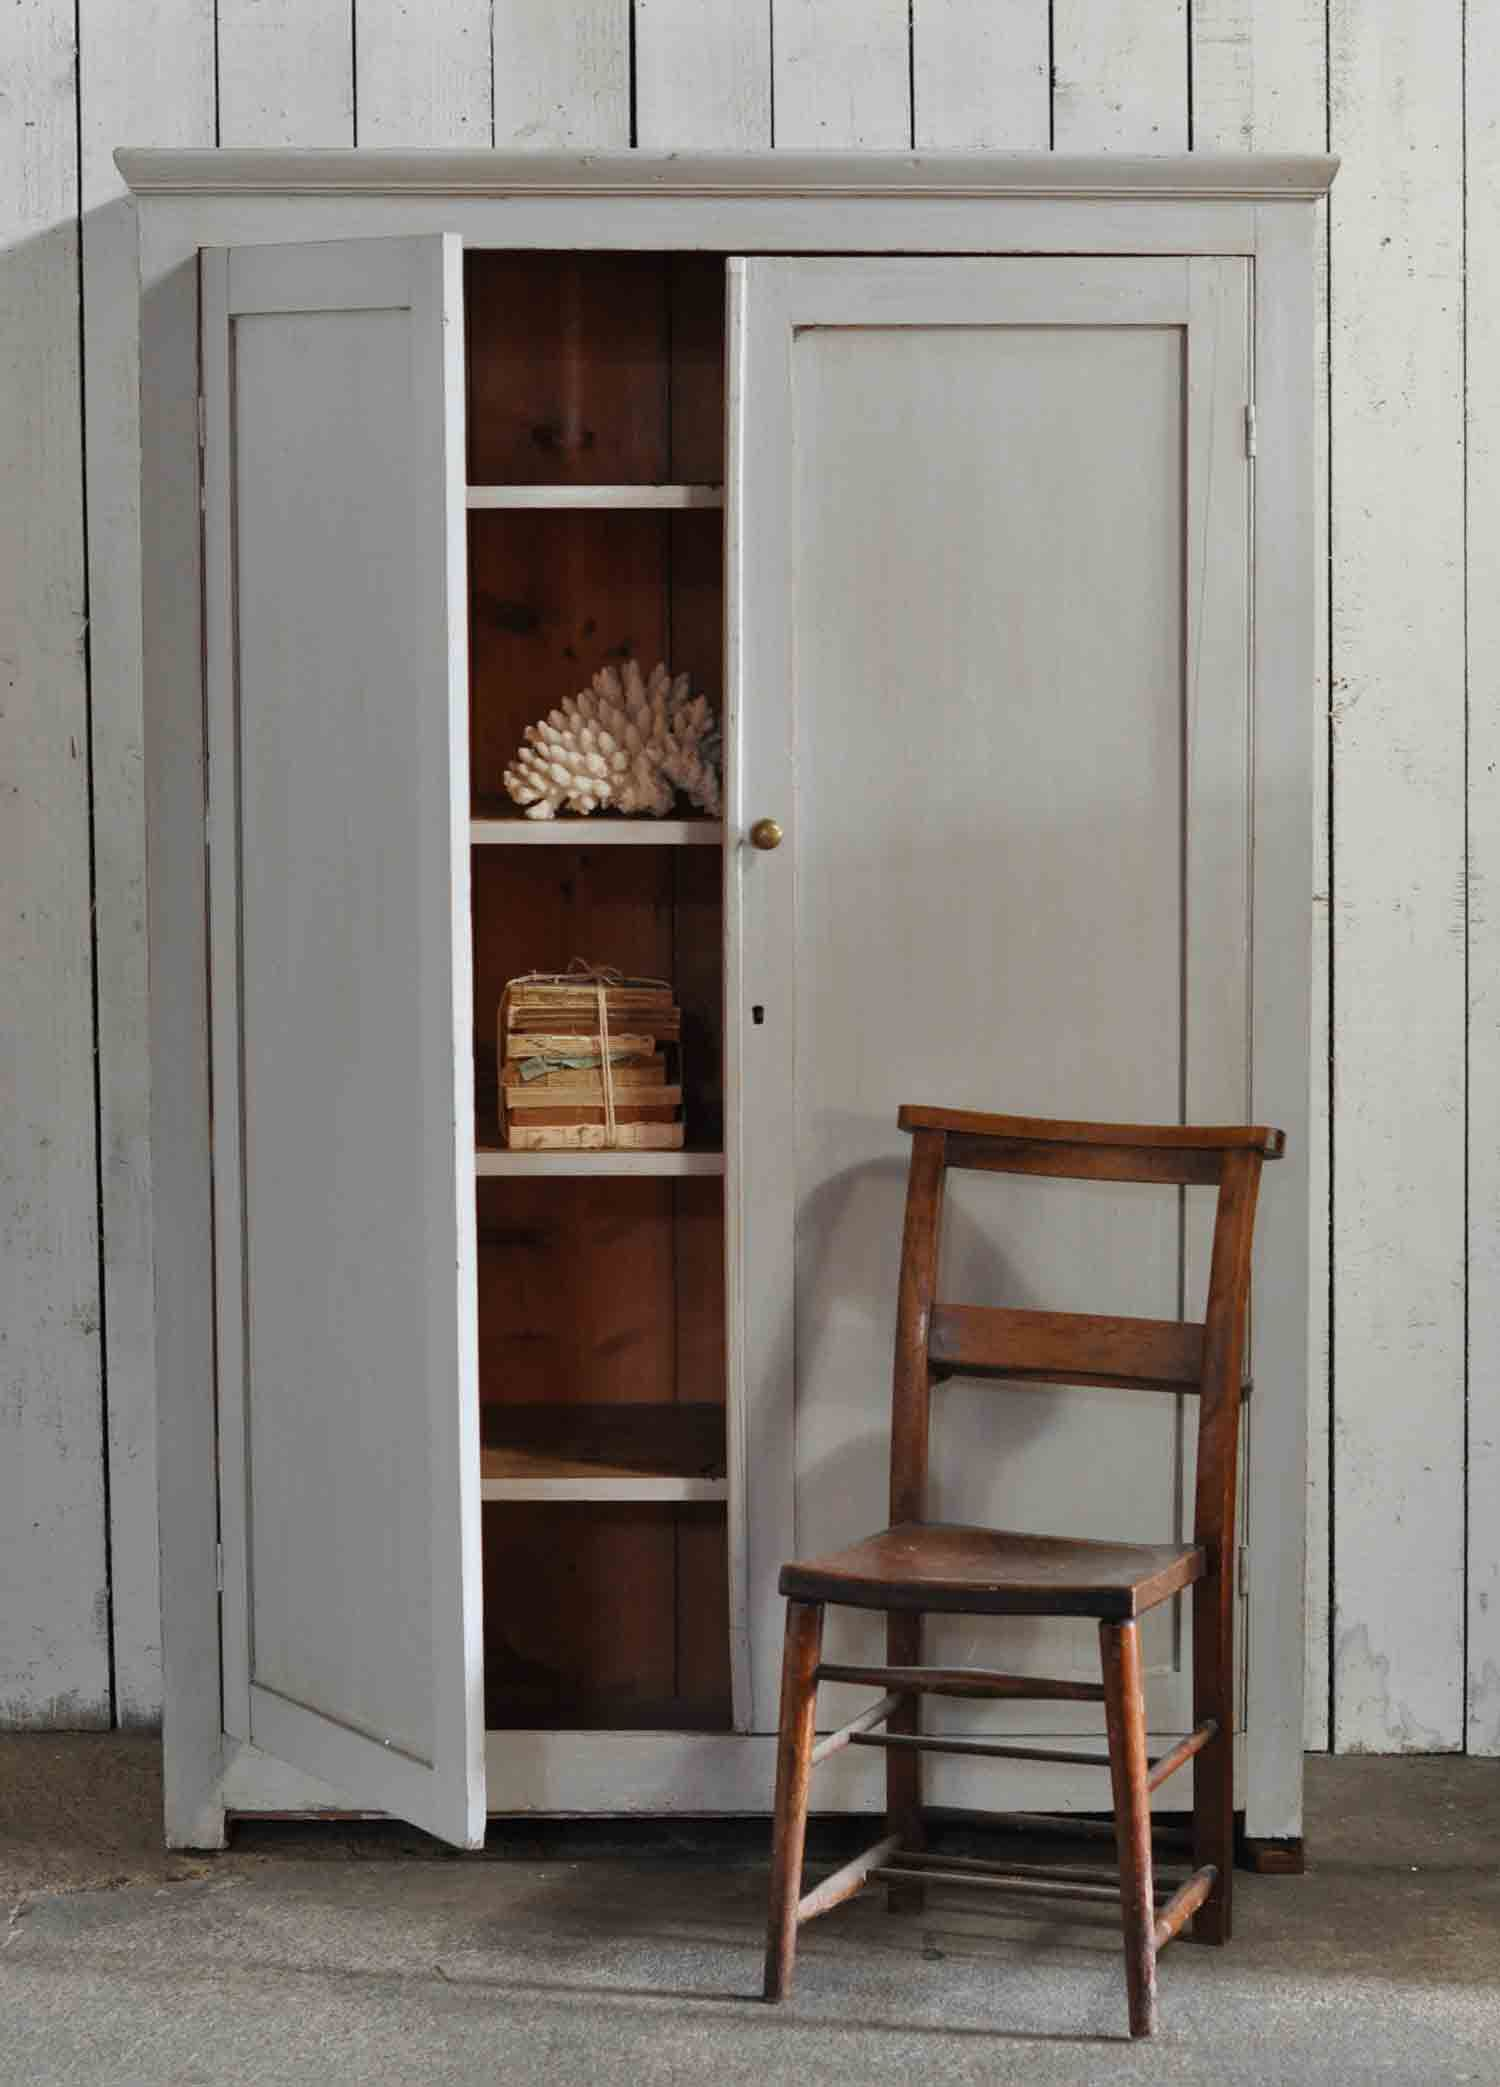 chicken chic cupboard how to rock buttermilk ideas with glass interior in former digsdigs on vintage a decor shabby compartments the your wire